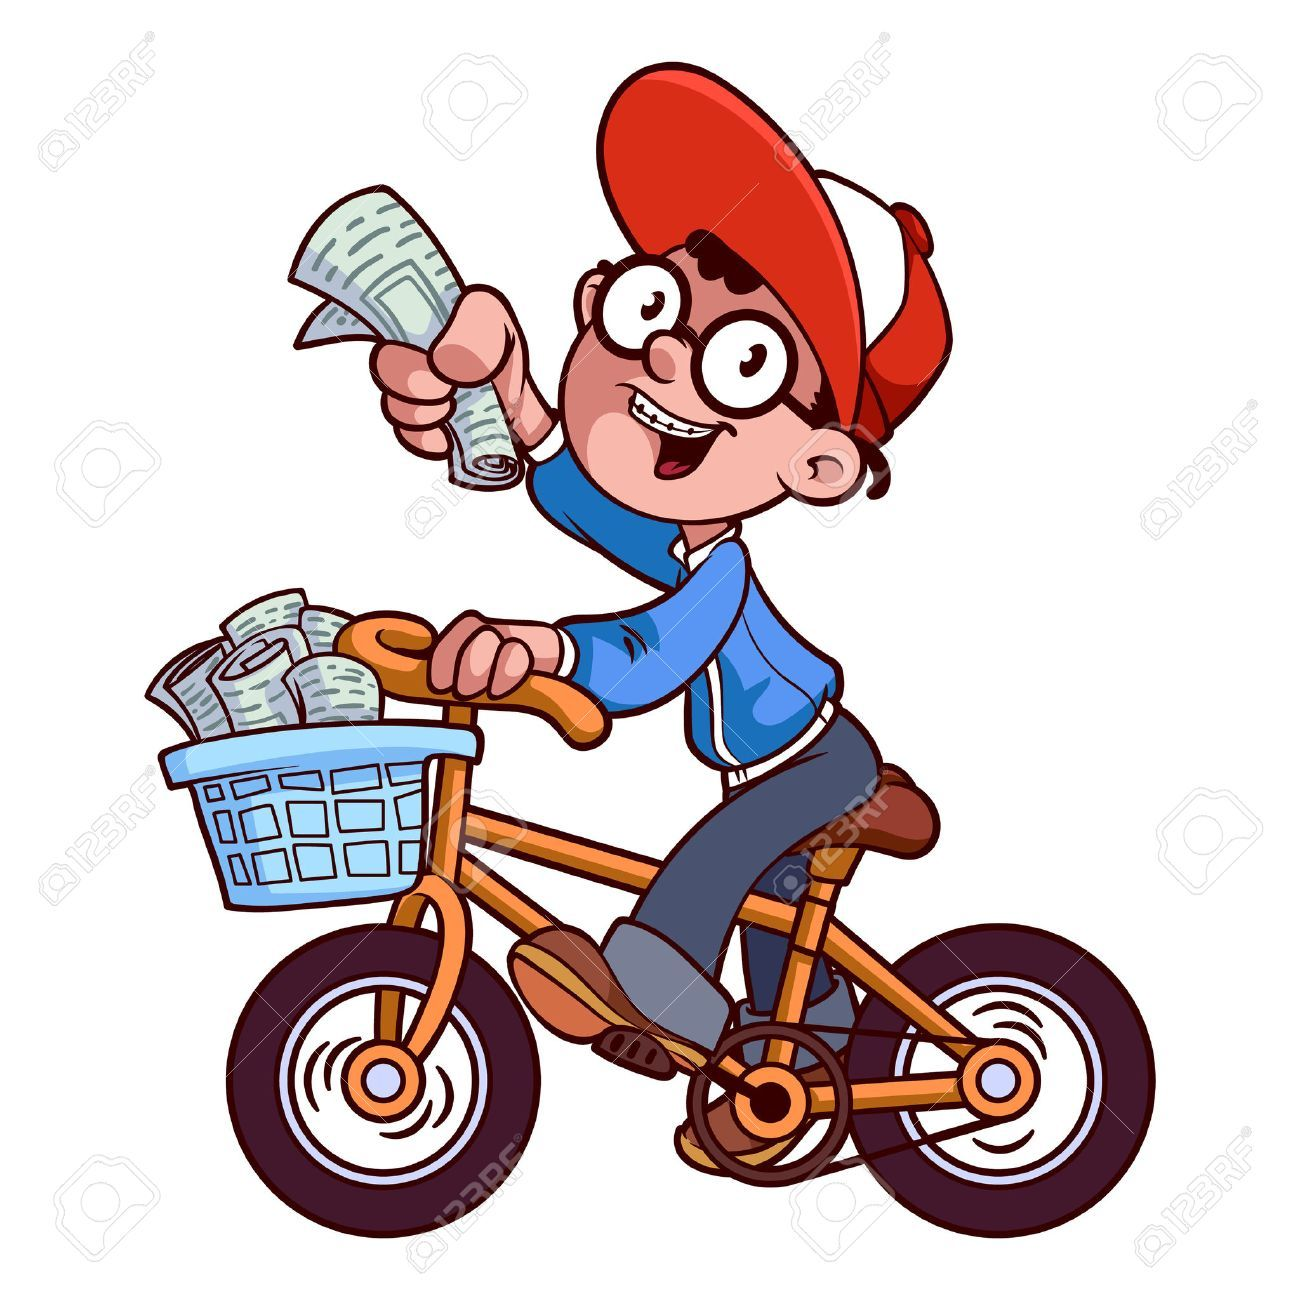 Newspaper delivery clipart 5 » Clipart Portal.